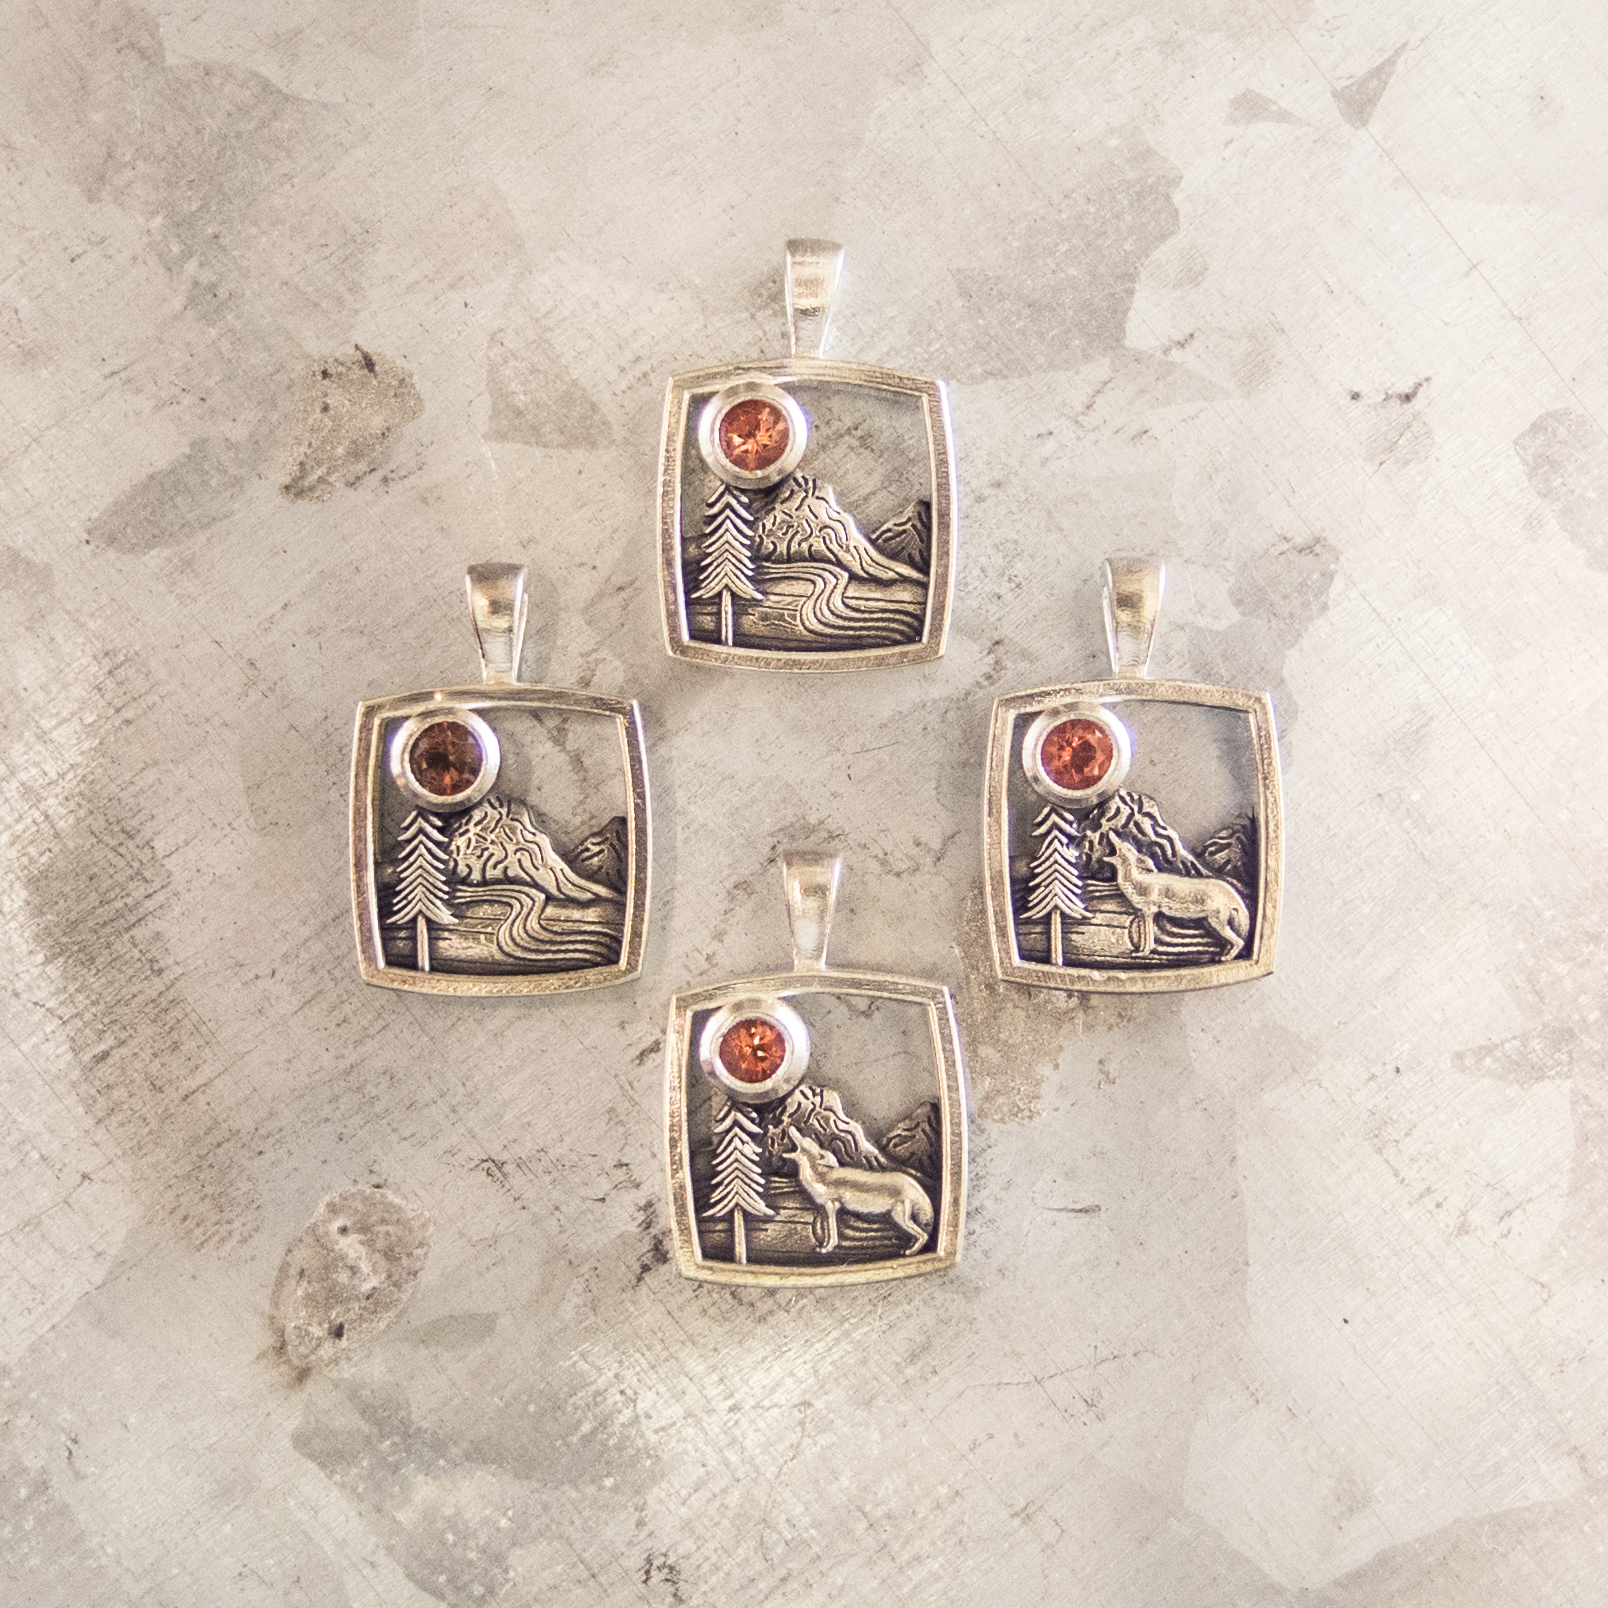 Mountain Home Square Pendants